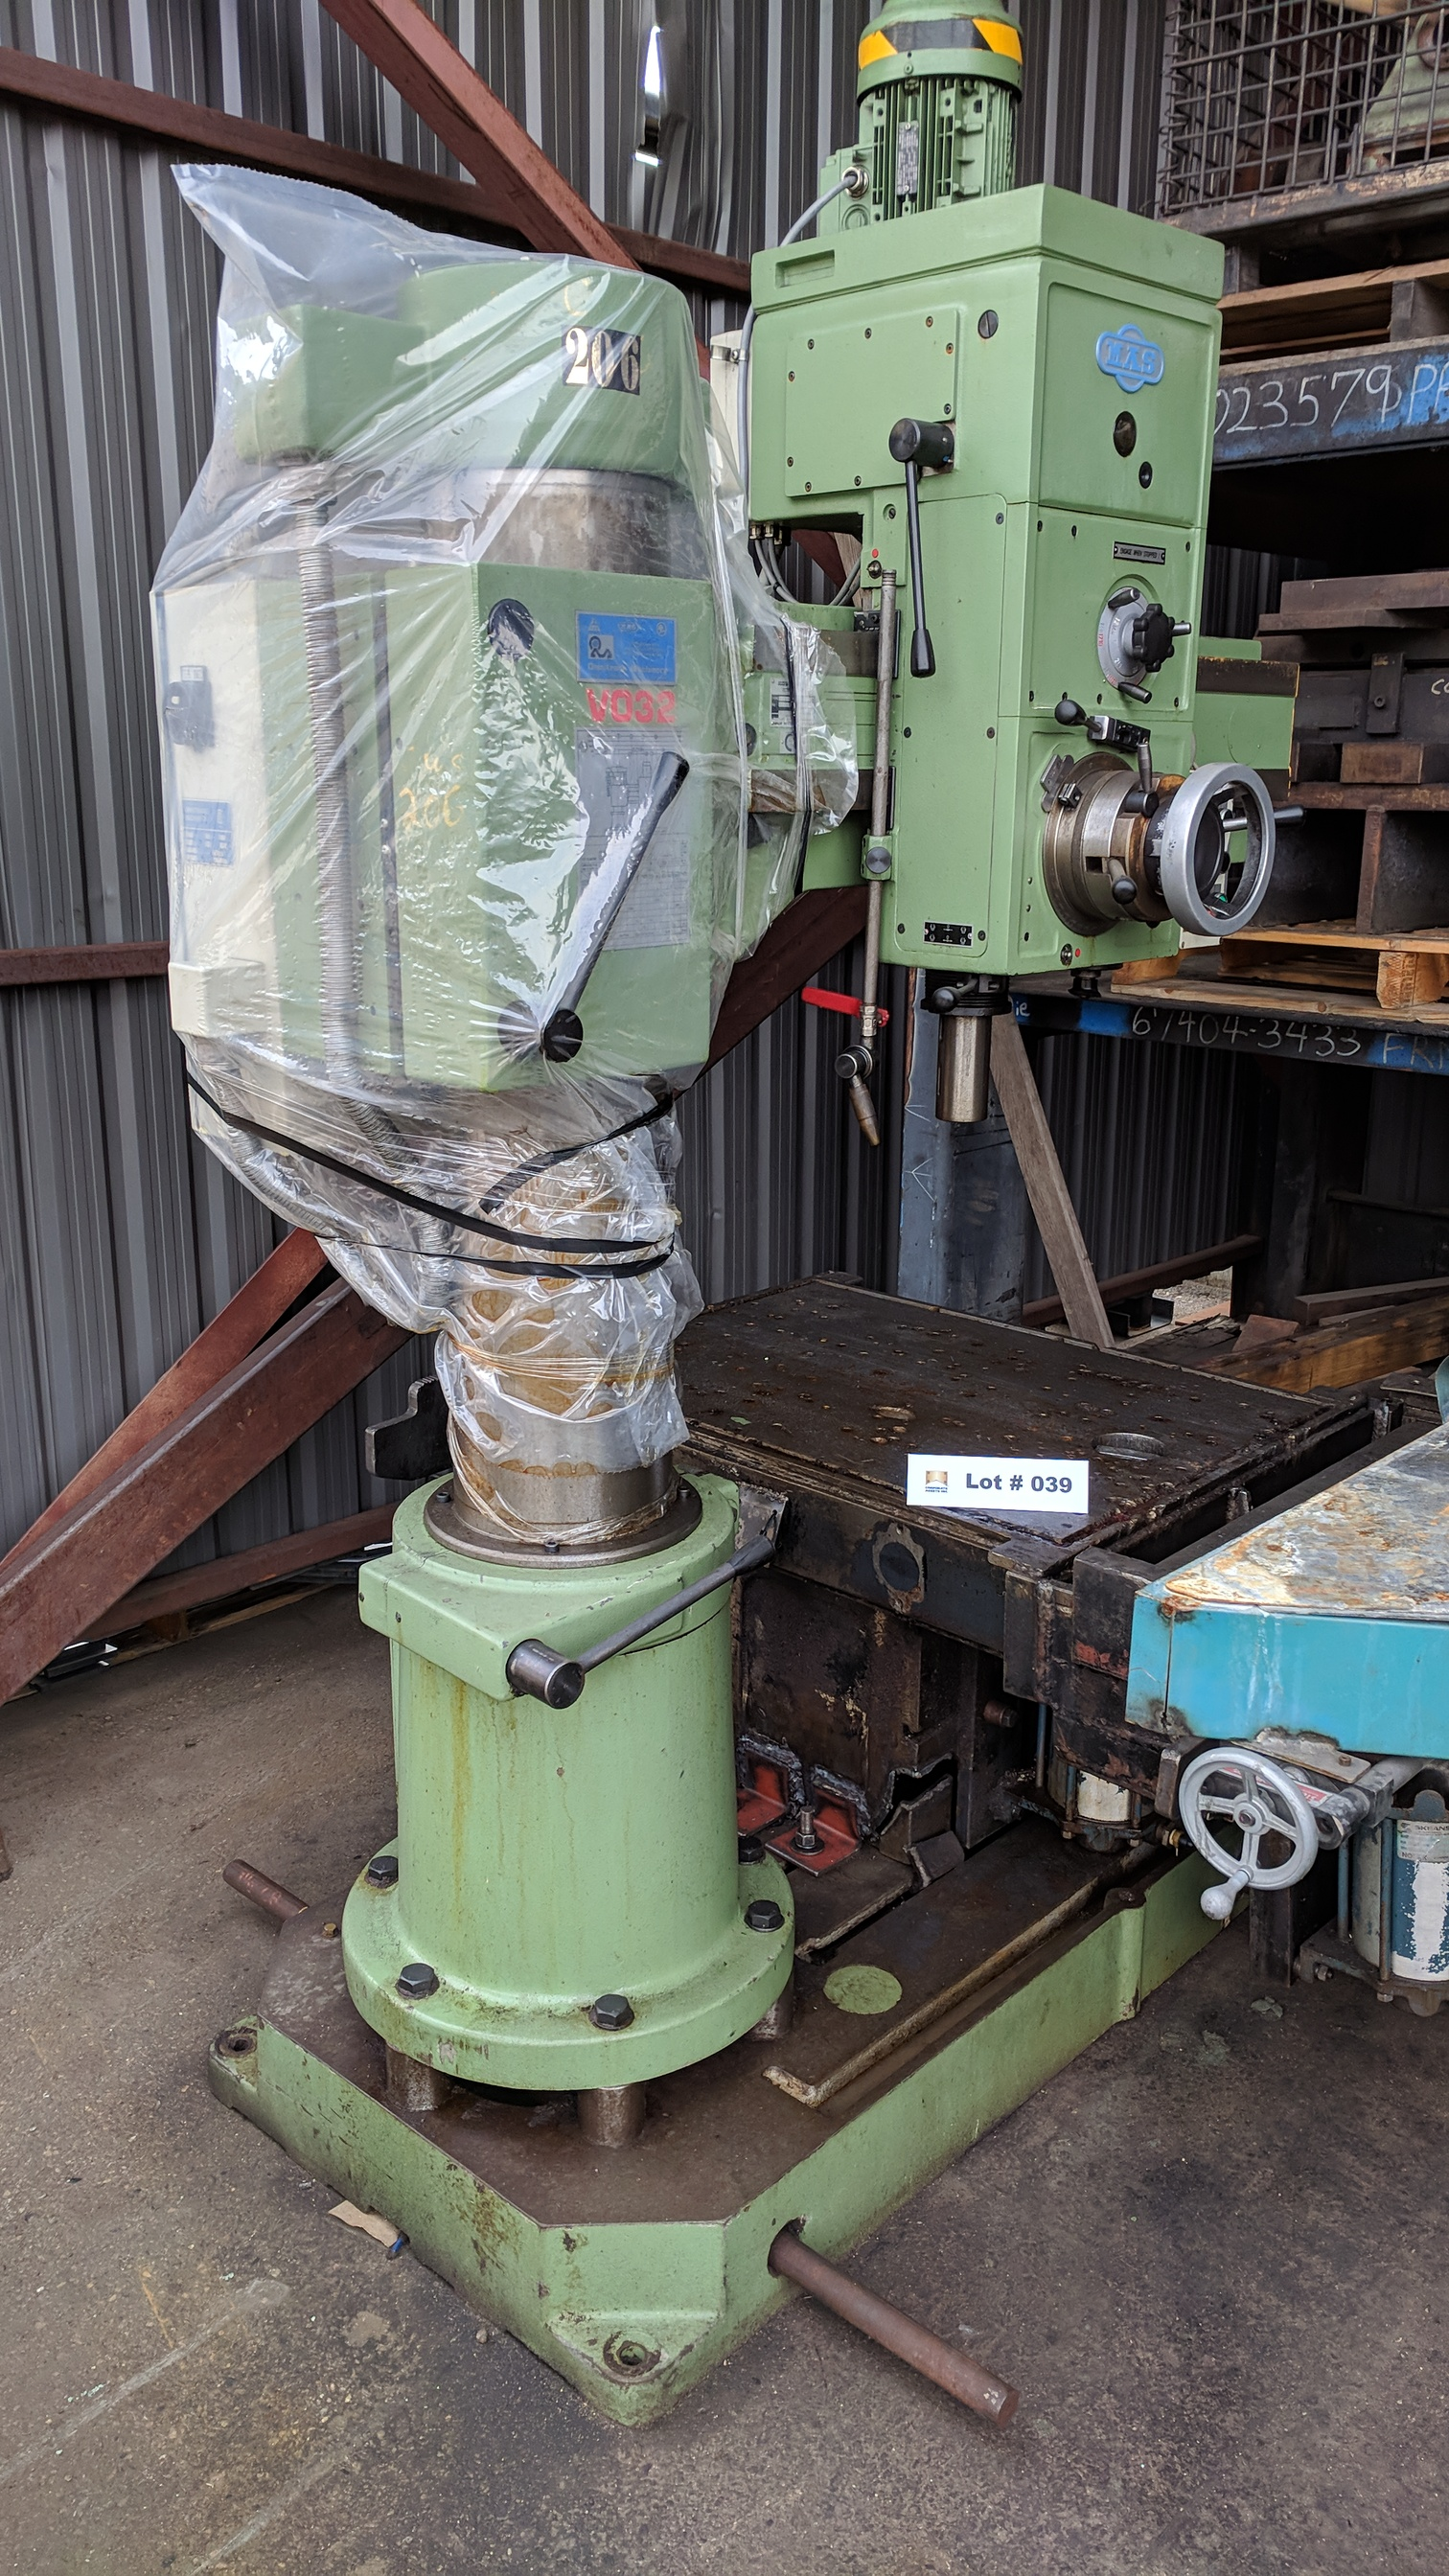 """MAS (1998) VO32 40"""" RADIAL ARM DRILL WITH 10"""" COLUMN, SPEEDS TO 2890 RPM, 3 HP, S/N 2663 (CI)"""